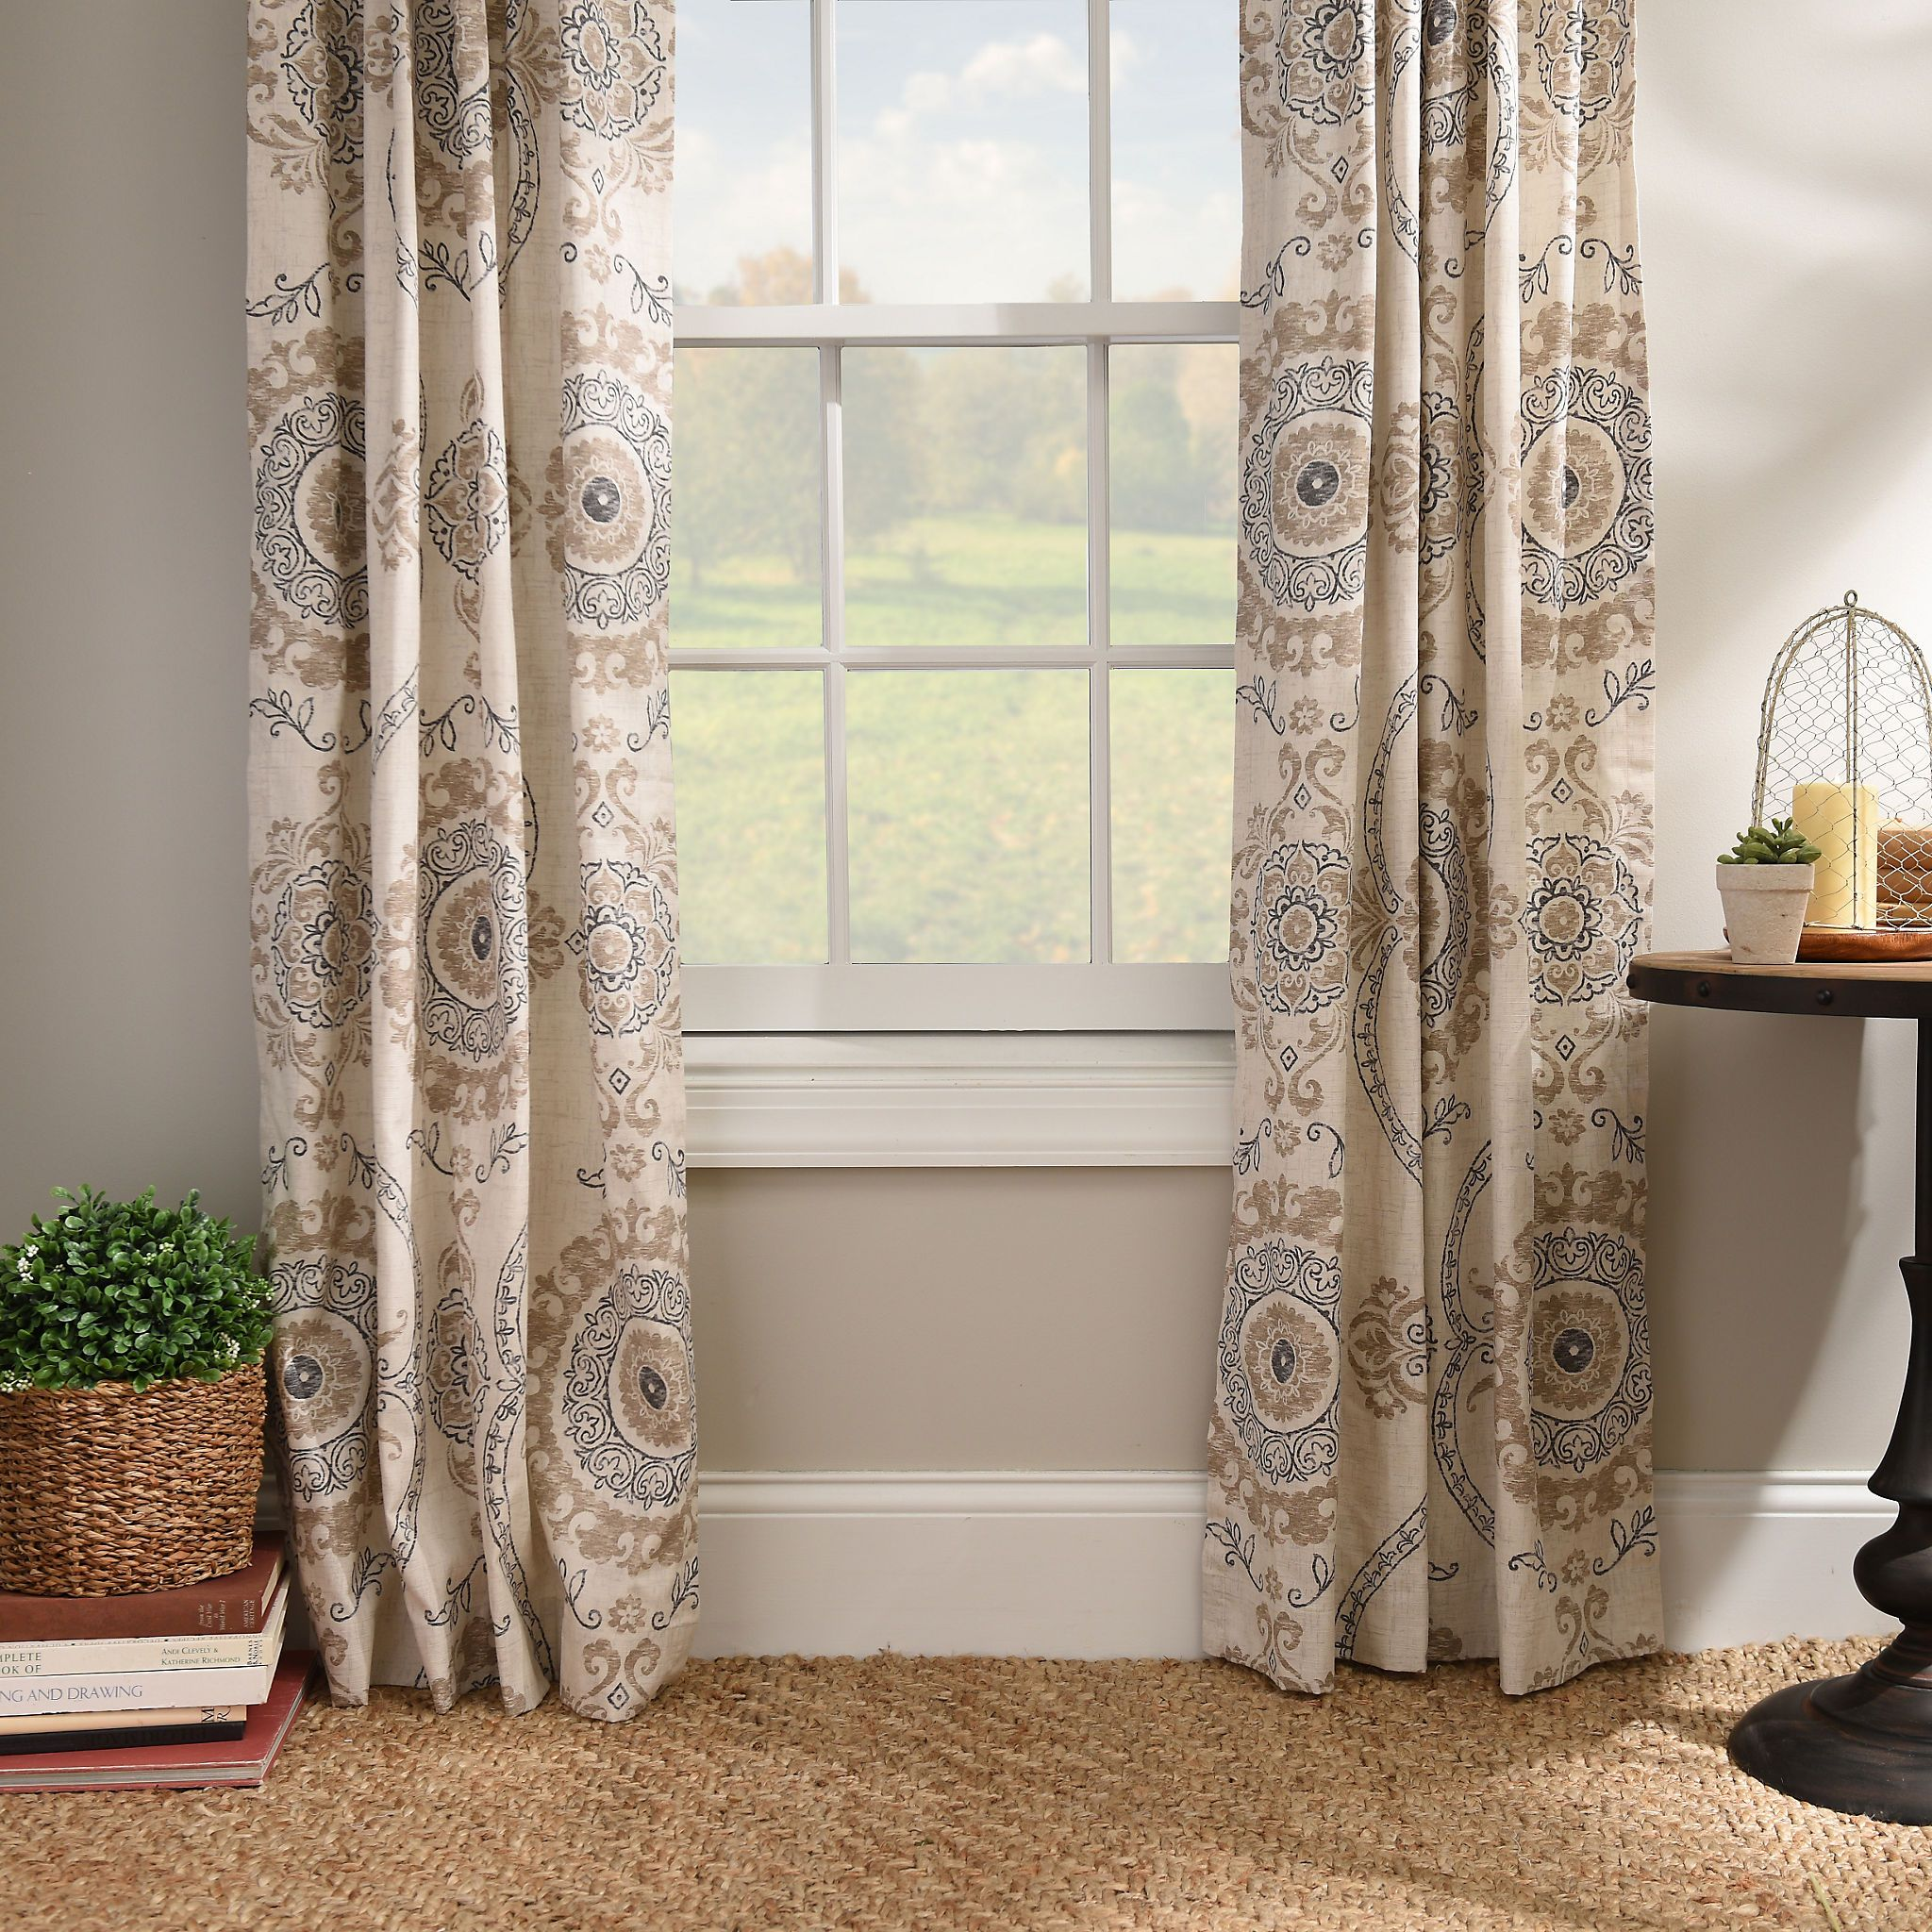 curtain launch comment hei gray panel wid activate tproduct constrain manor card fit to product drapes set in uts kirklands grand